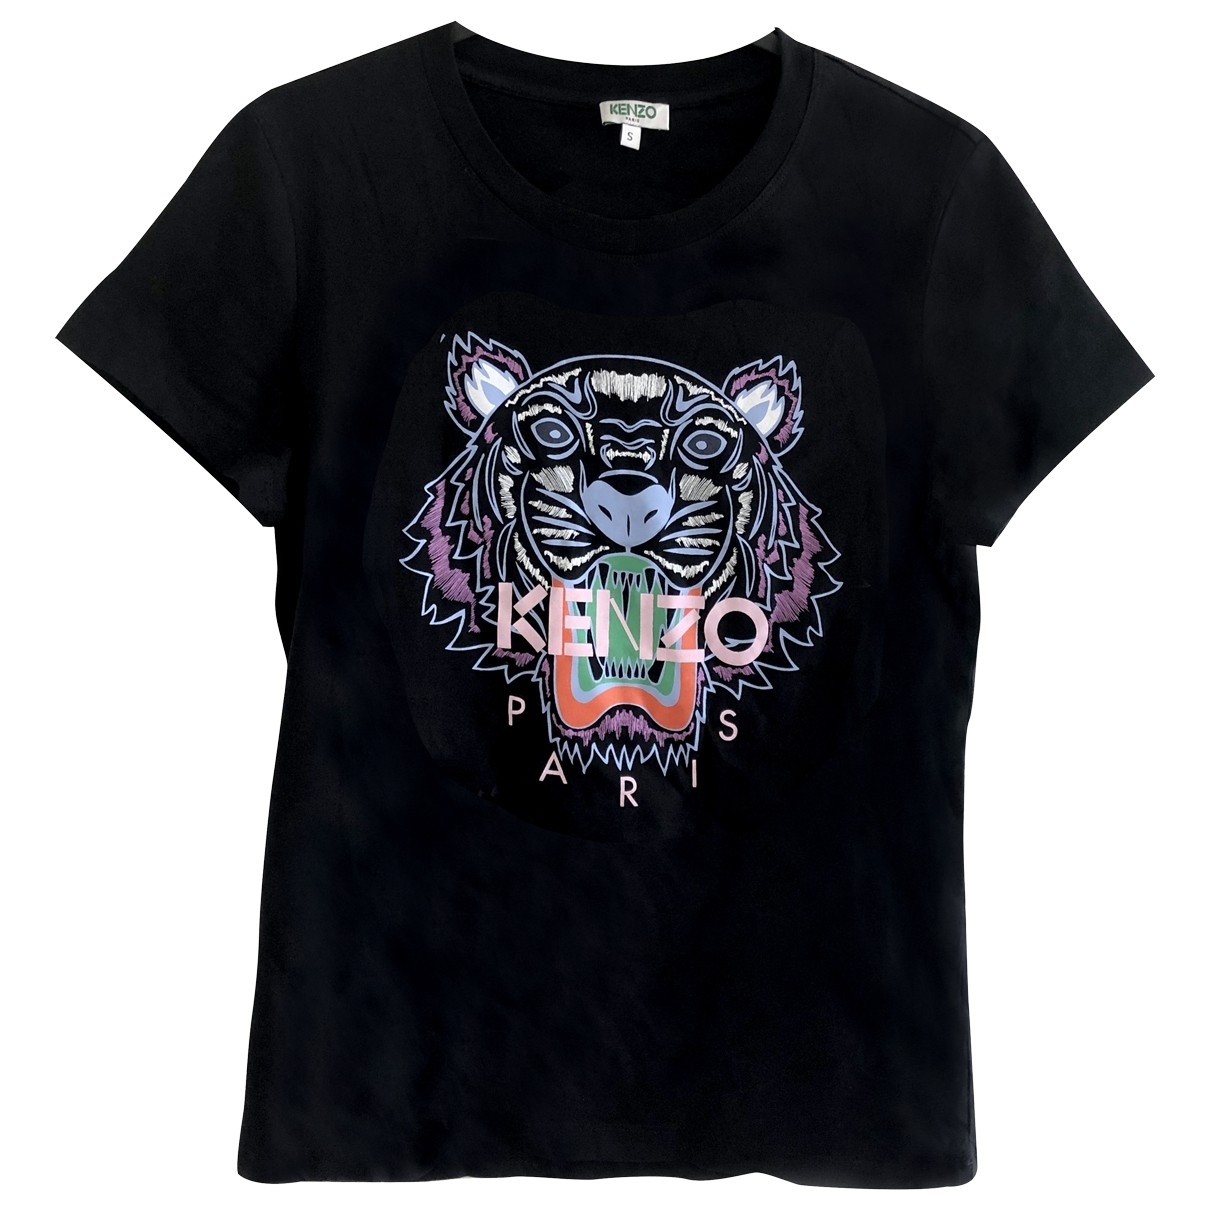 Kenzo \N Black Cotton  top for Women 4 UK